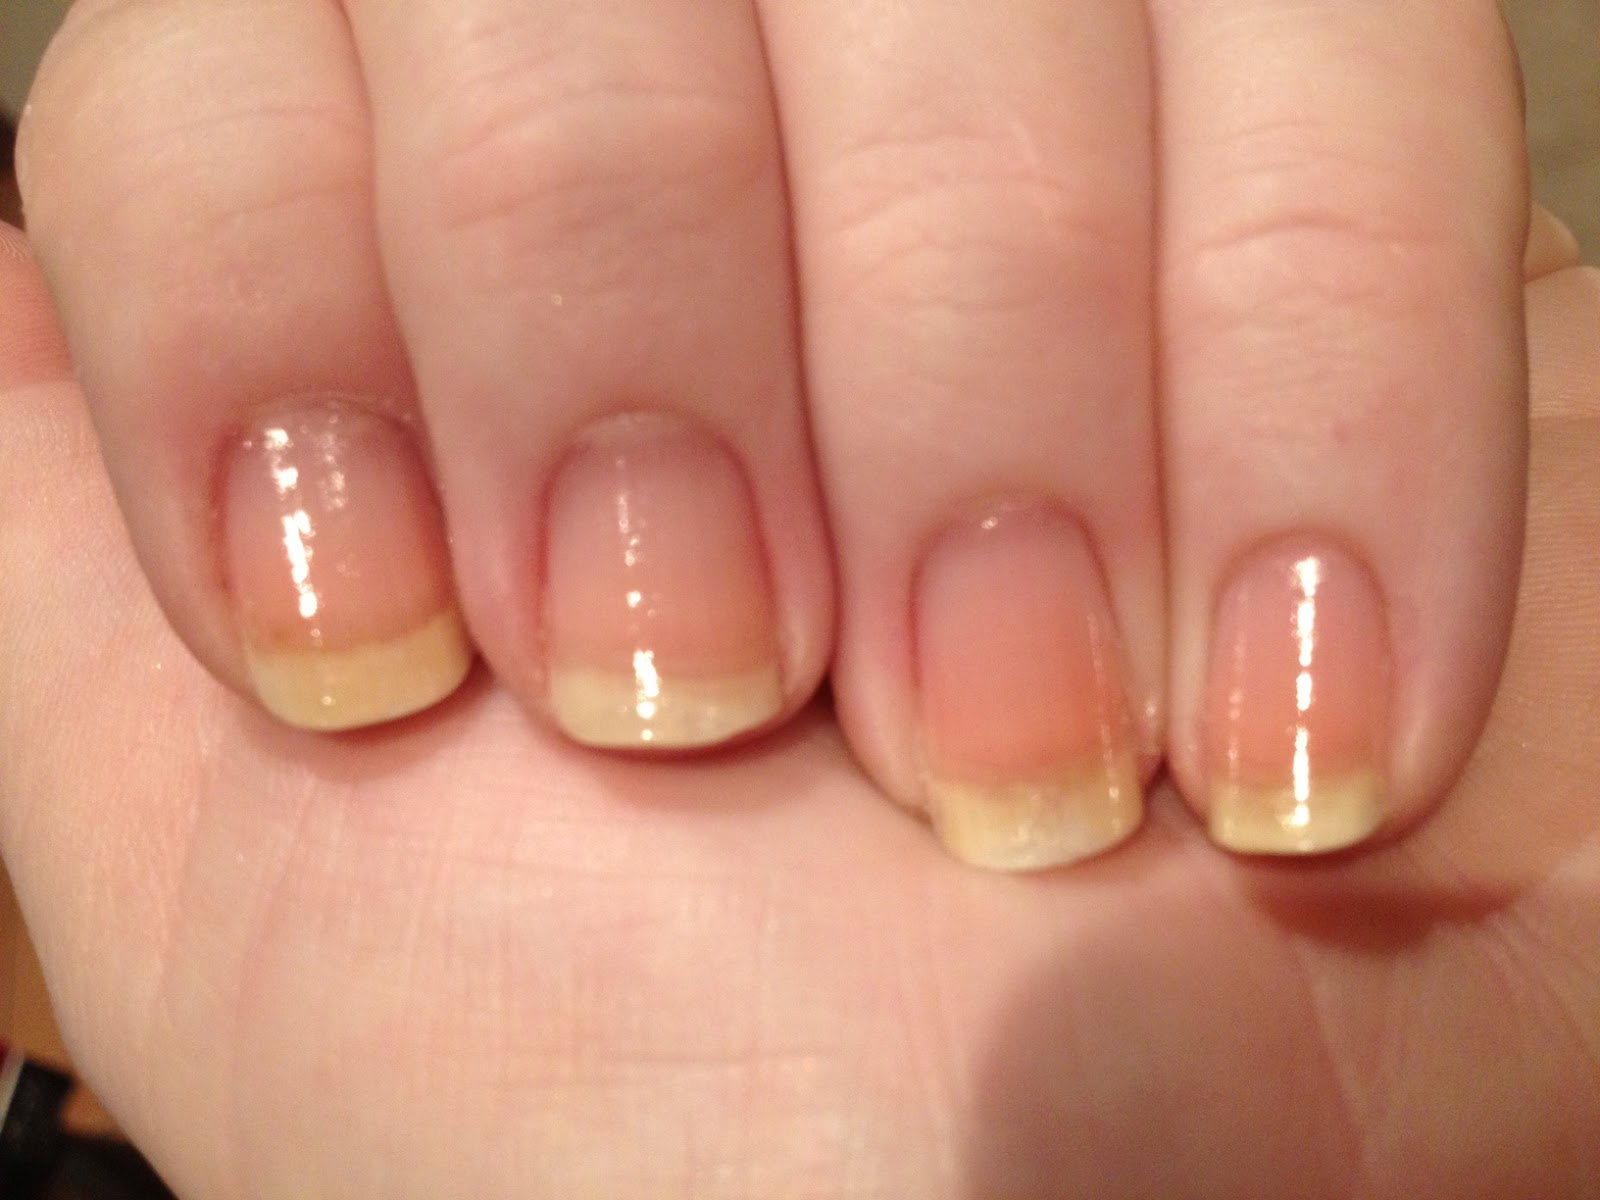 how to stop biting and picking nails